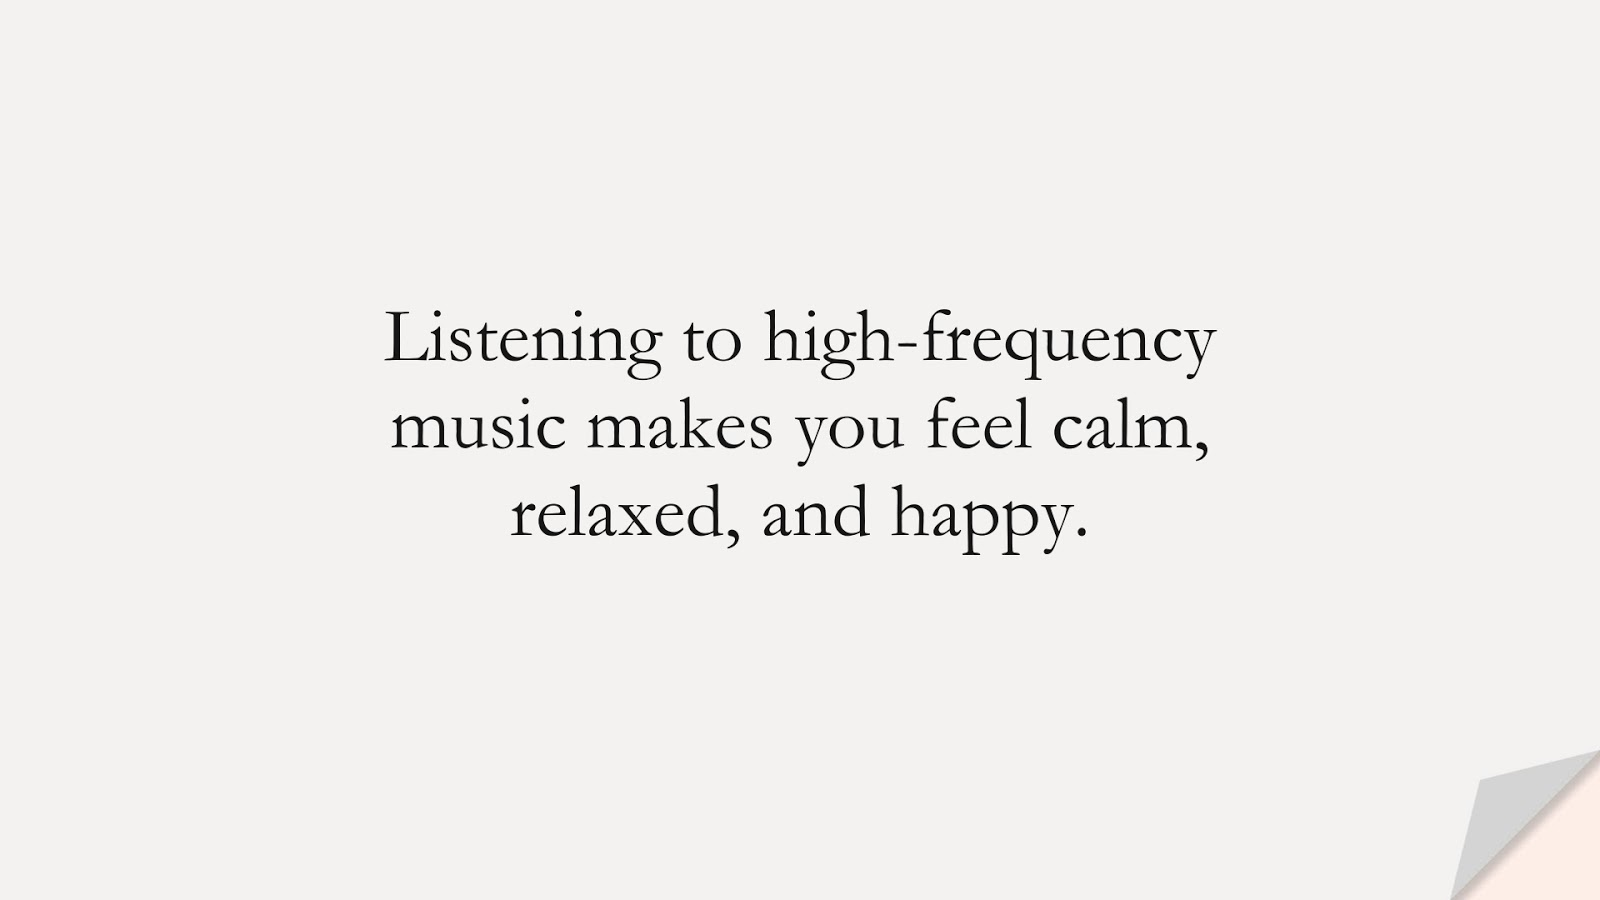 Listening to high-frequency music makes you feel calm, relaxed, and happy.FALSE